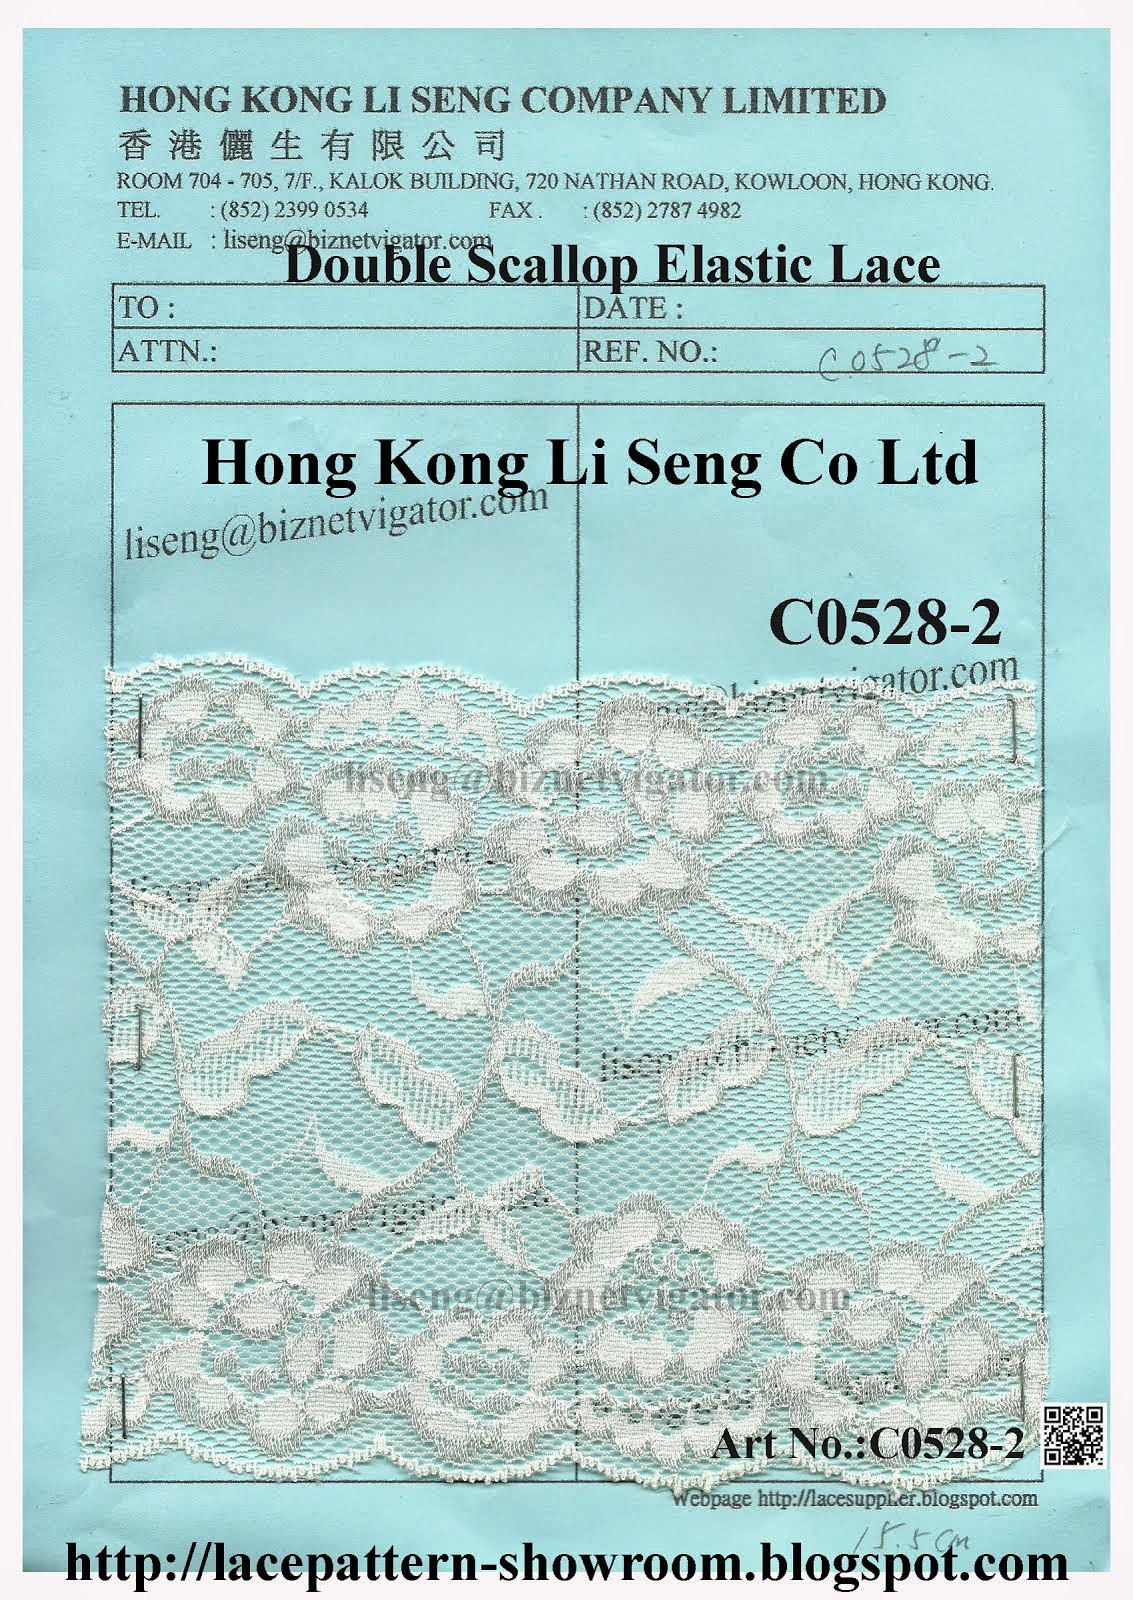 Double Scallop Elastic Lace Wholesaler and Supplier - Hong Kong Li Seng Co Ltd